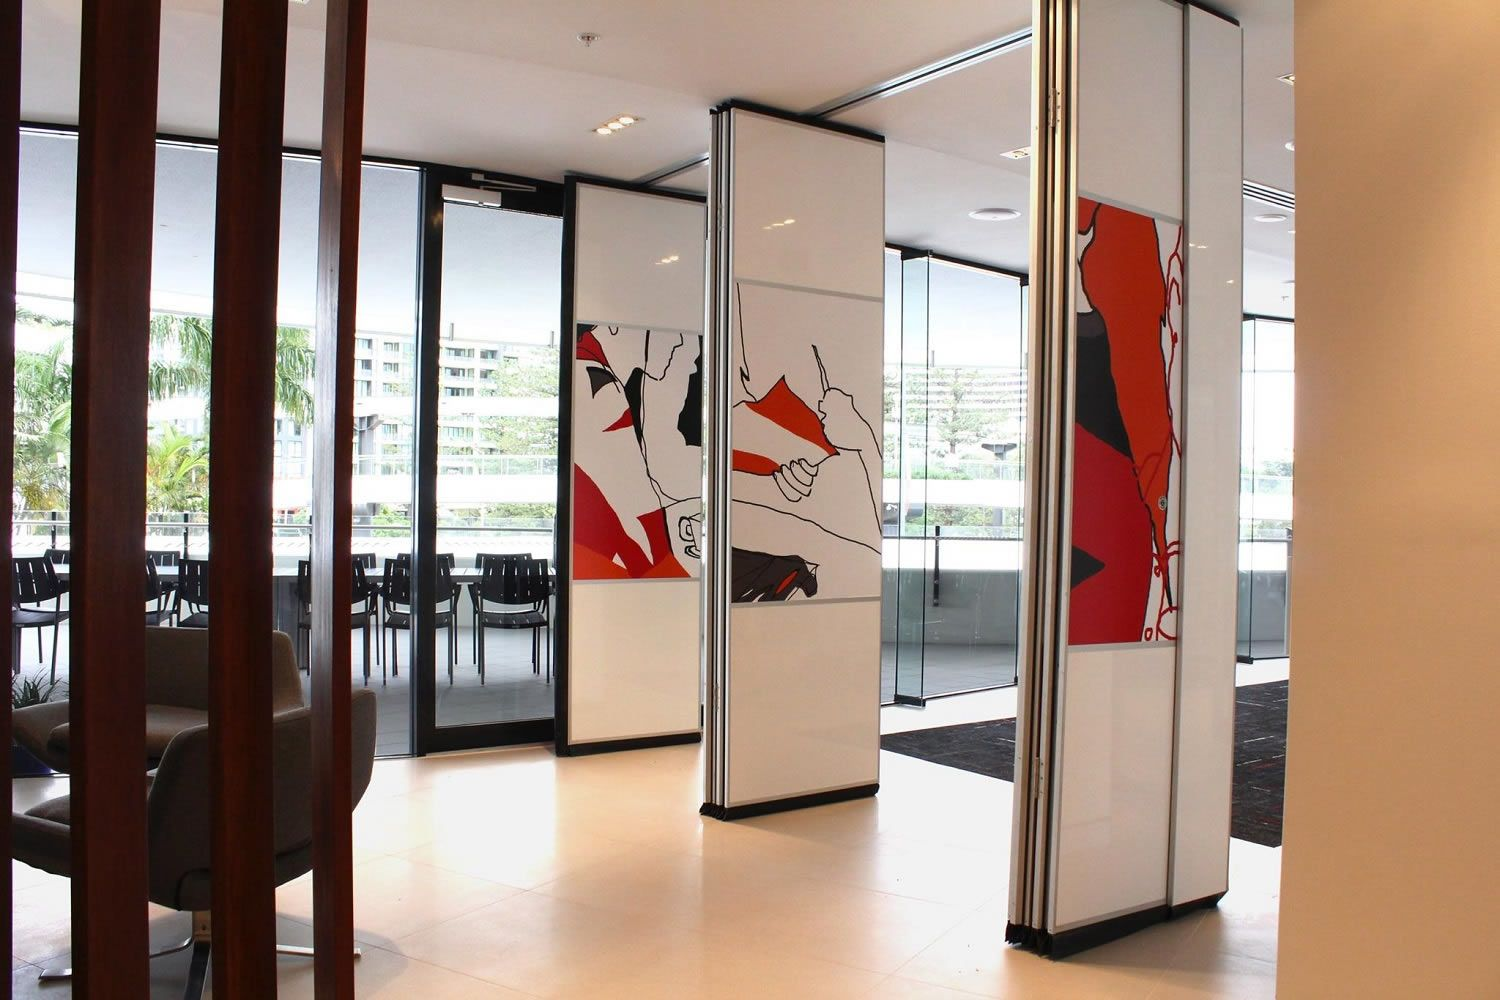 Acoustic Soundproof Interior Temporary Reduction Room Dividers Panels